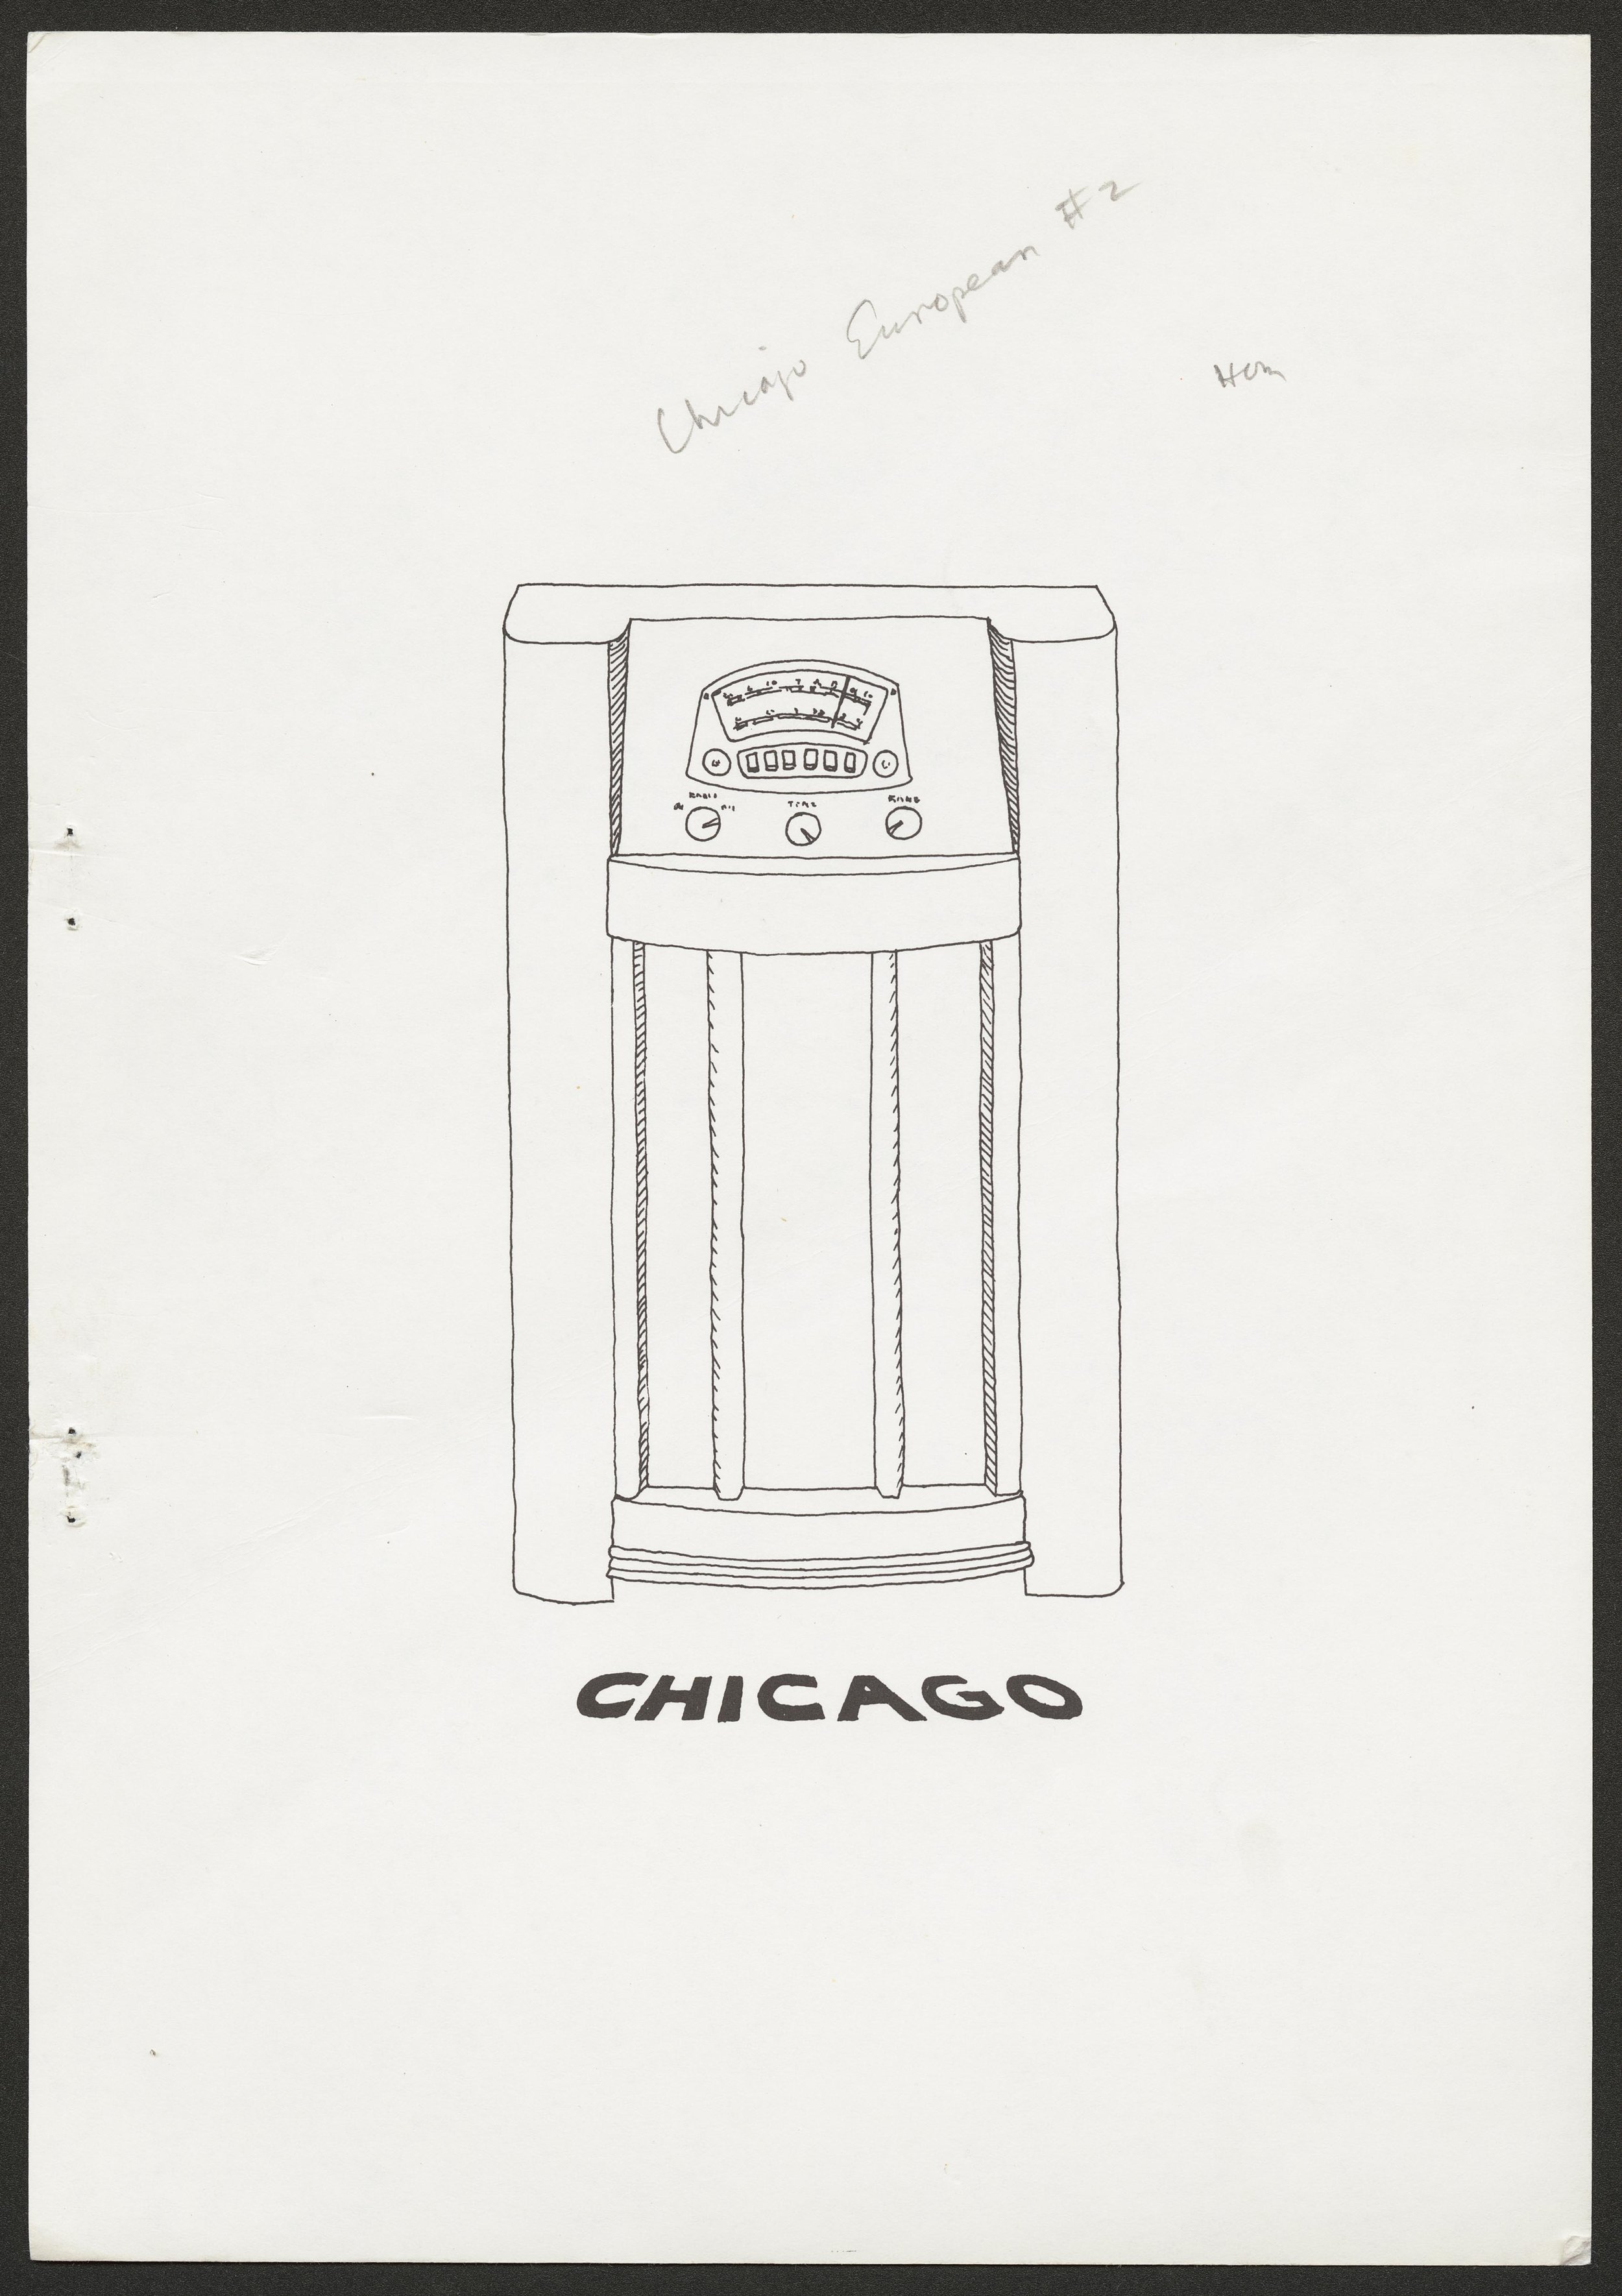 """CHICAGO - European Edition No. 2, February 1974Table of Contents:TOM CLARK—8 PoemsANSELM HOLLO—""""Some Notes On Reading Frank O'Hara's Collected Poems & Going Through the Archives""""JOE CERAVOLO—6 PoemsGUILLAUME APOLLINAIRE—""""Zone"""" translated by Ron PadgettALICE NOTLEY—""""This Morning,"""" """"Poem,"""" """"Clouds,"""" """"A Little Guinness,"""" """"Poem,"""" """"Great Balls of Fire""""DOUG OLIVER—""""From the Suicide Cave Oracle,"""" """"Team Leader,"""" """"Importantly""""ANNE WALDMAN—""""Balzac""""ARAM SAROYAN—""""Cream's Song""""CLARK COOLIDGE— The Long, Long Skies (of Jack Kerouac, his words)RICHARD FRIEDMAN—8 PoemsPIERRE JORIS—""""Screens,"""" """"About Time (A Fragment)""""RON PADGETT—""""Poem""""BERNADETTE MAYER—""""Ferenczi""""TED BERRIGAN—9 Poems"""